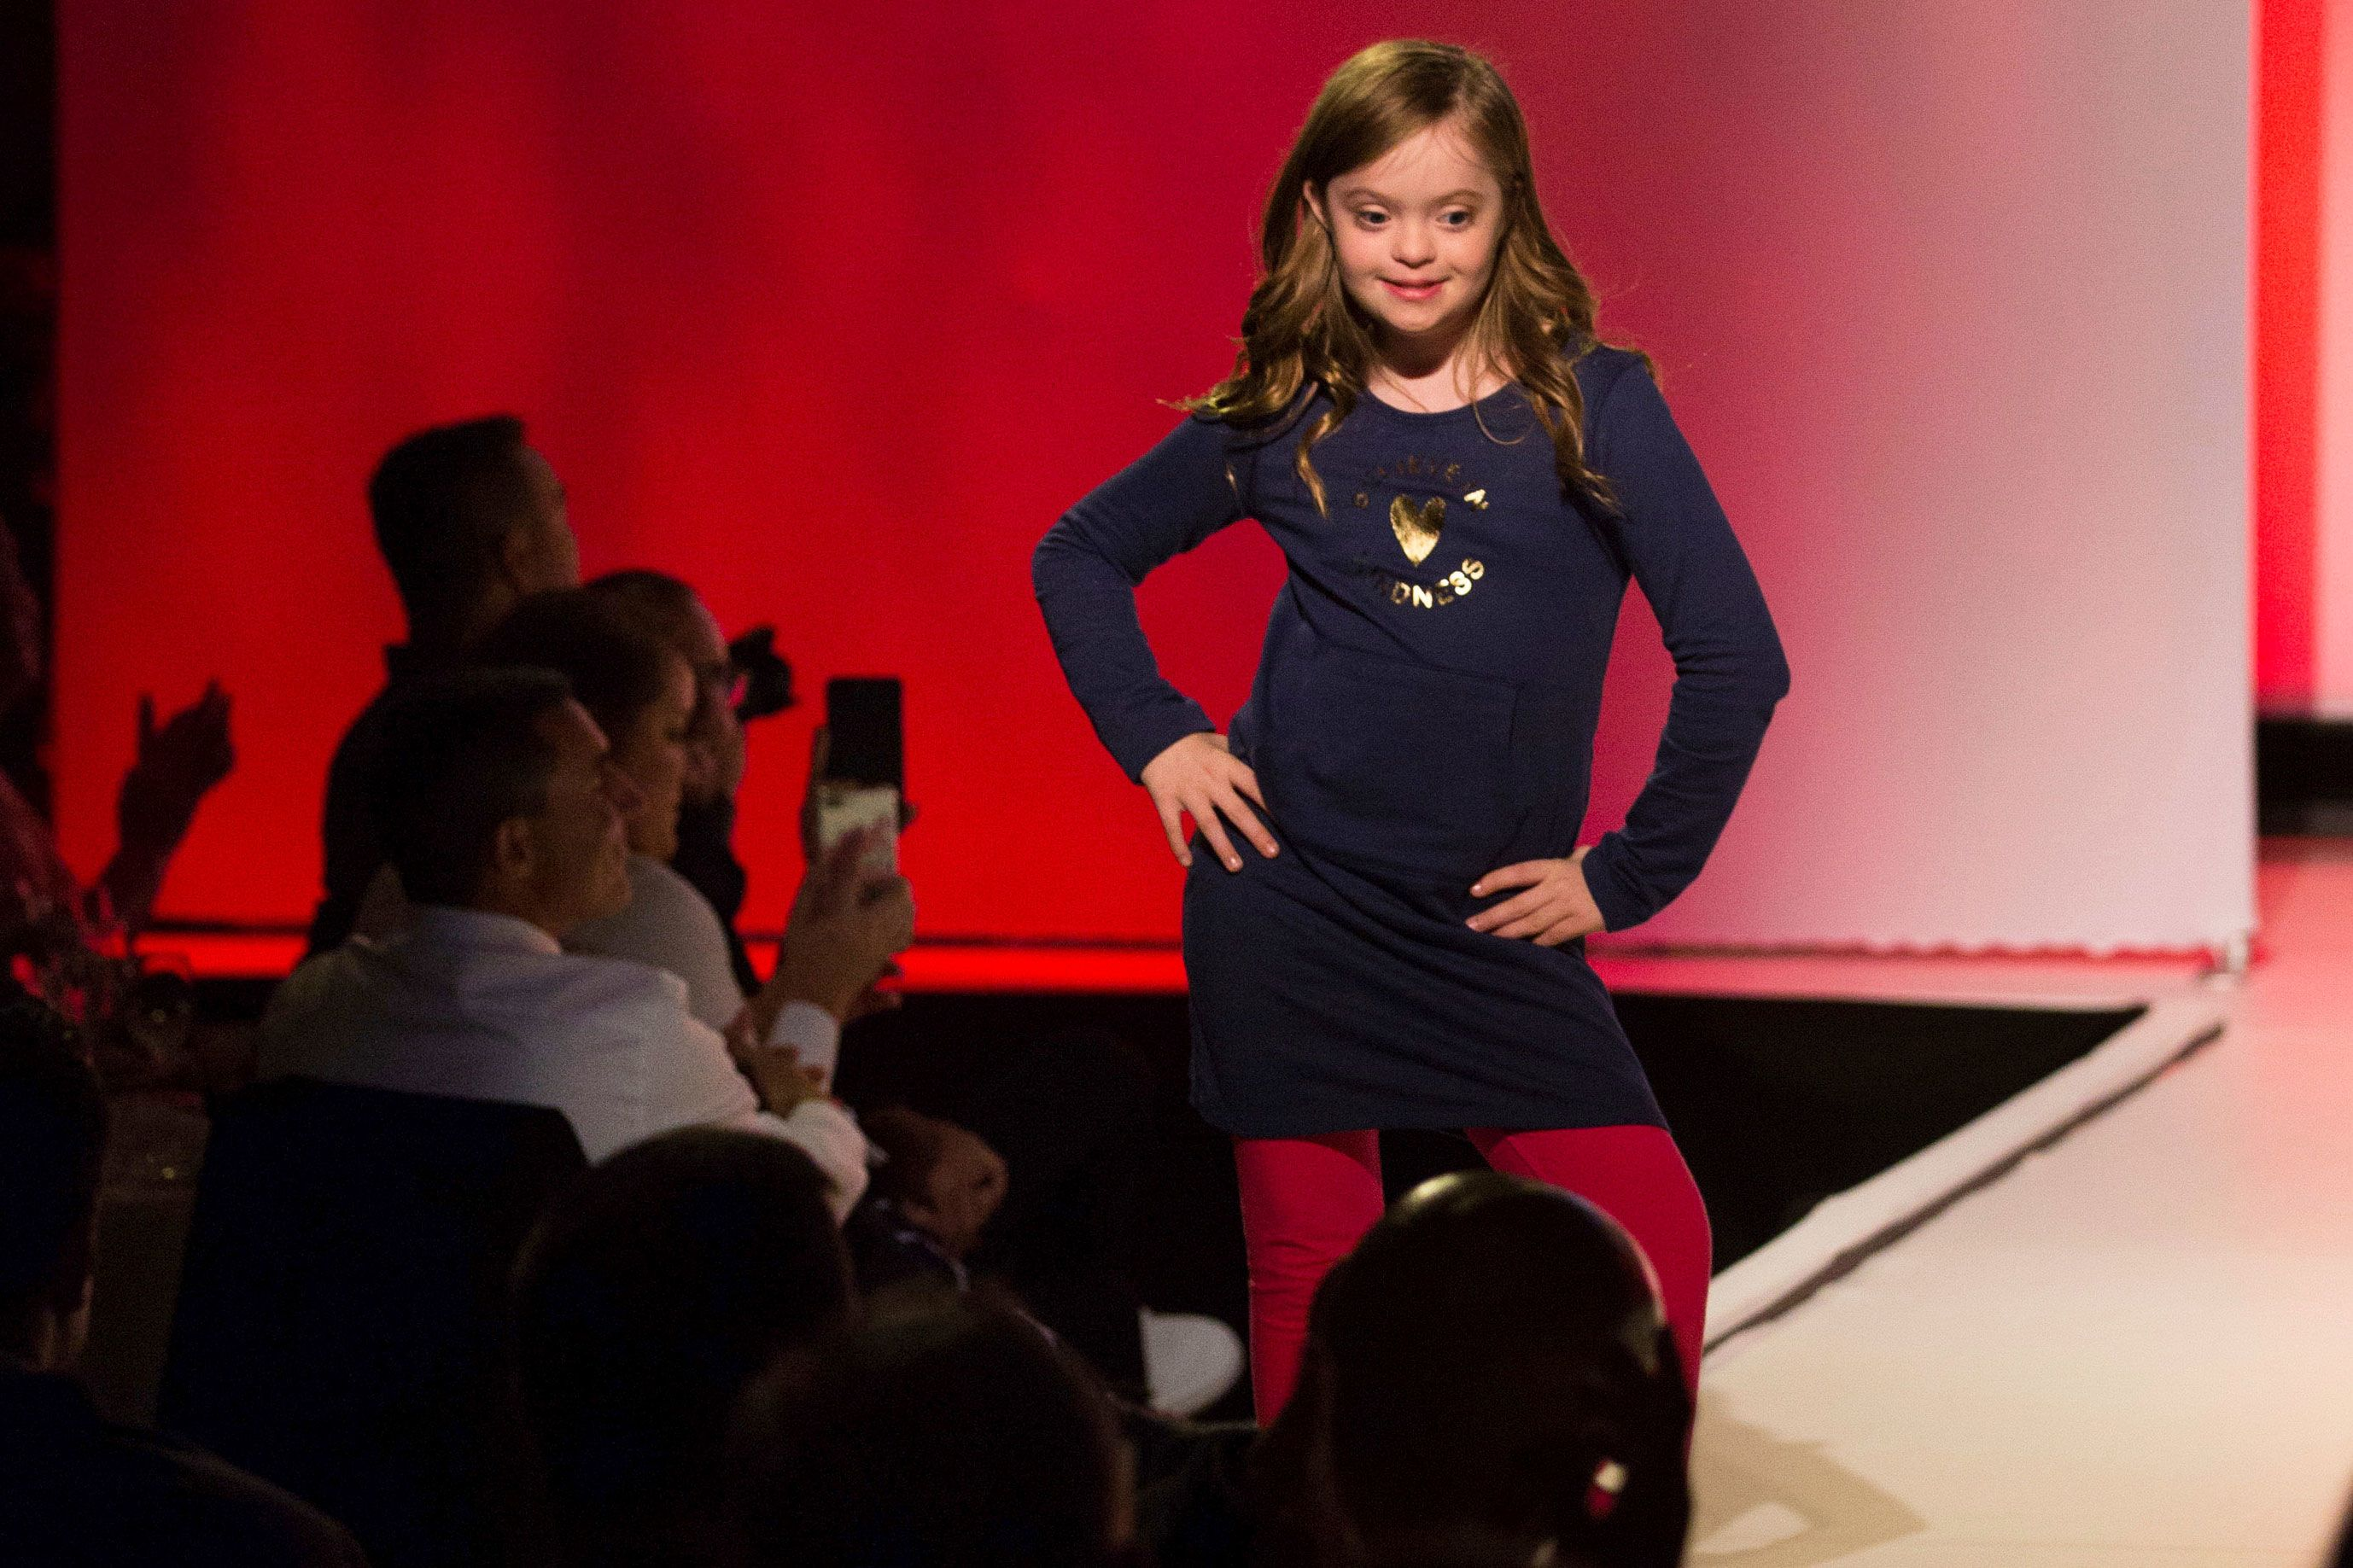 Children with disabilities now have more adaptive clothing options